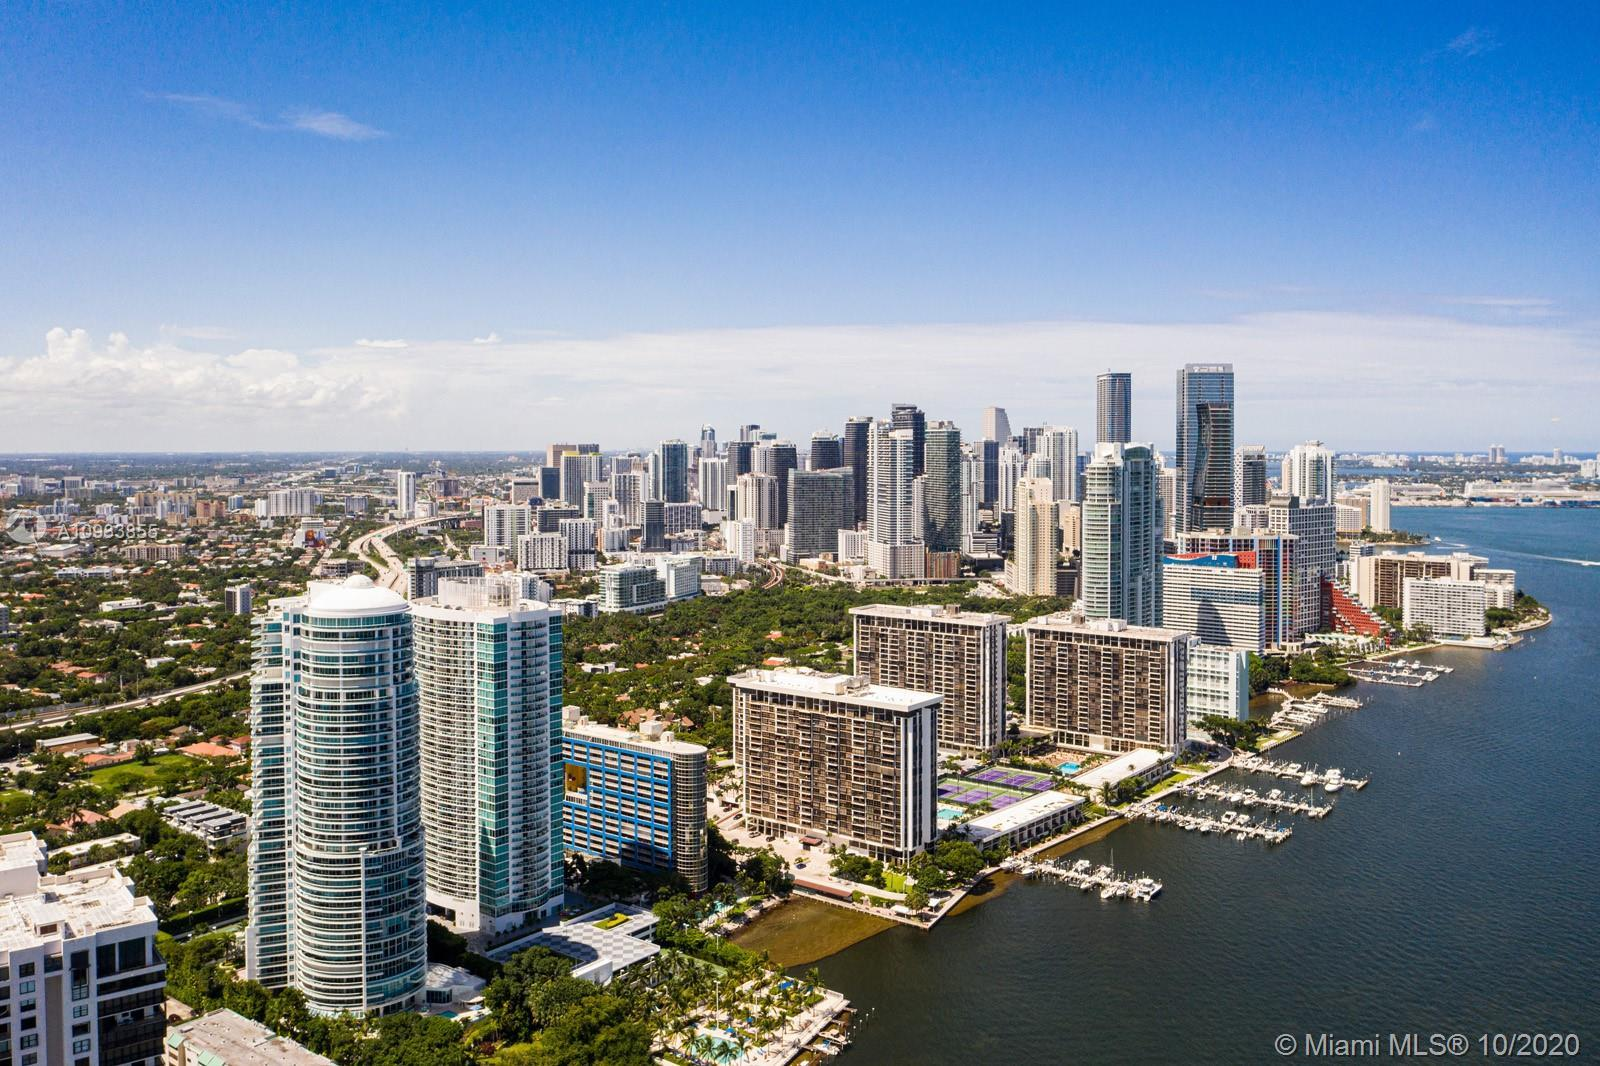 Developed by Ugo Colombo, Bristol Towers remains one of downtown Miami's best boutique high service